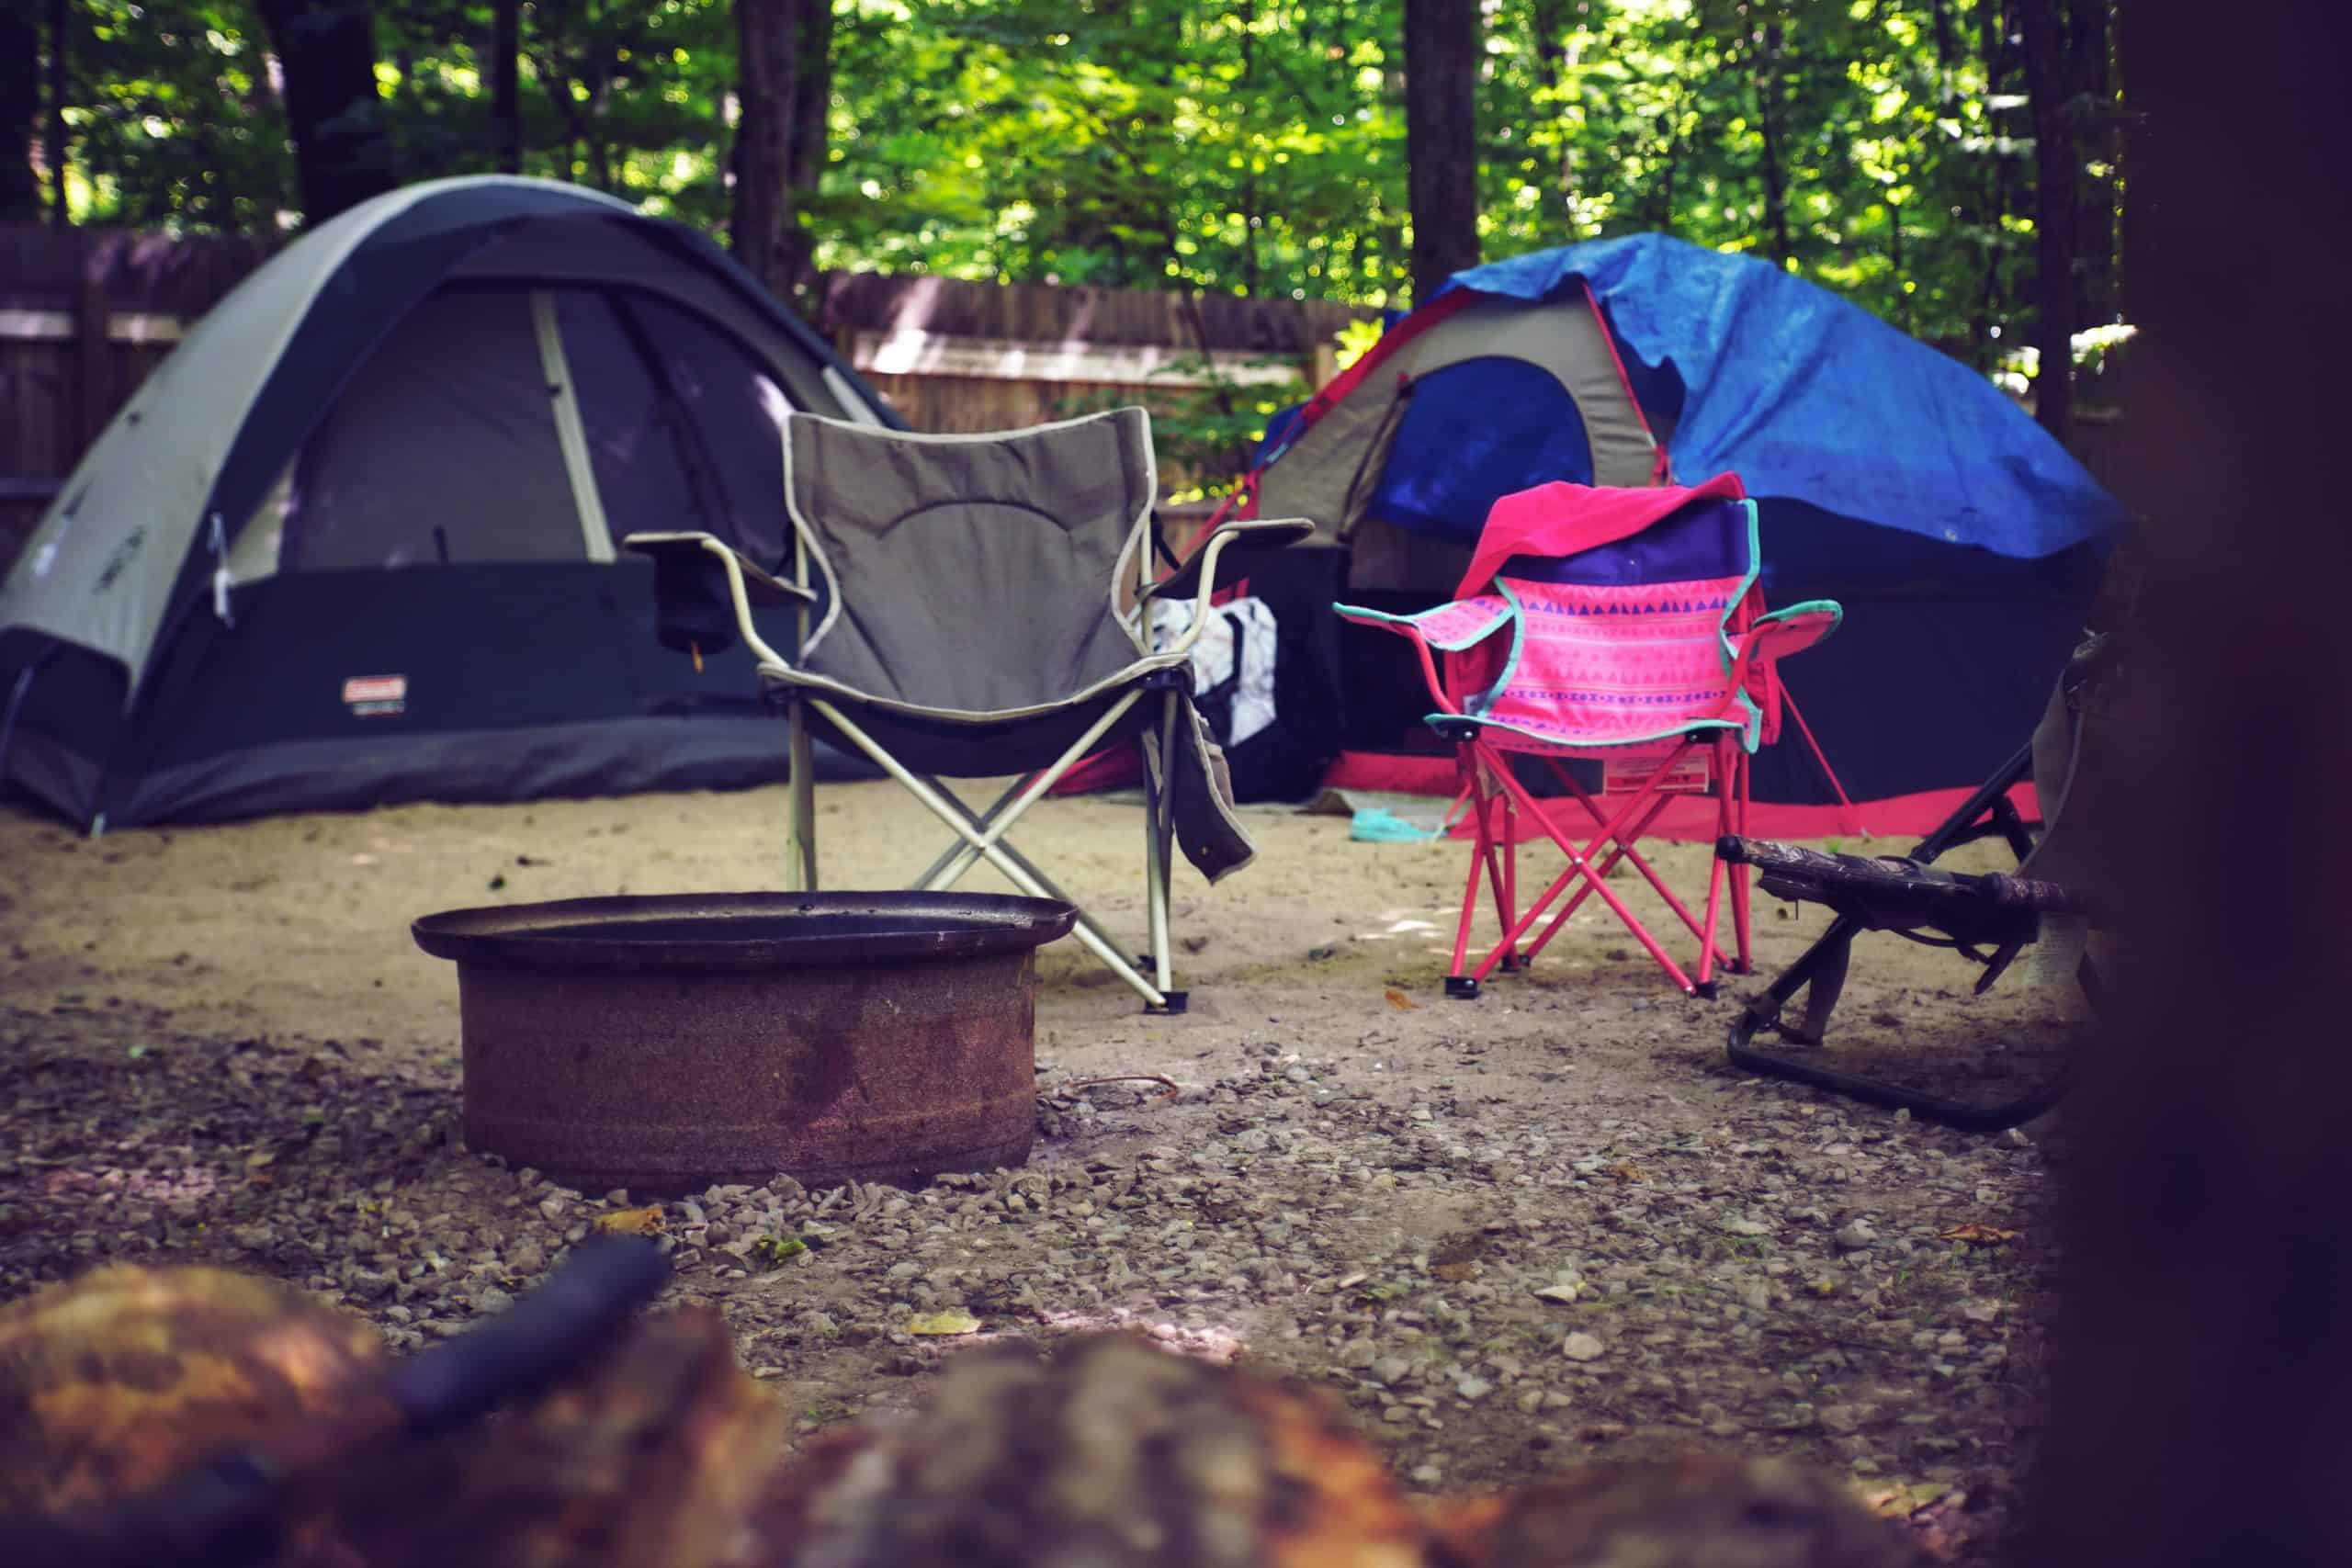 Camping Gear and Gadgets for Kids - Tools, Electronics, and More!